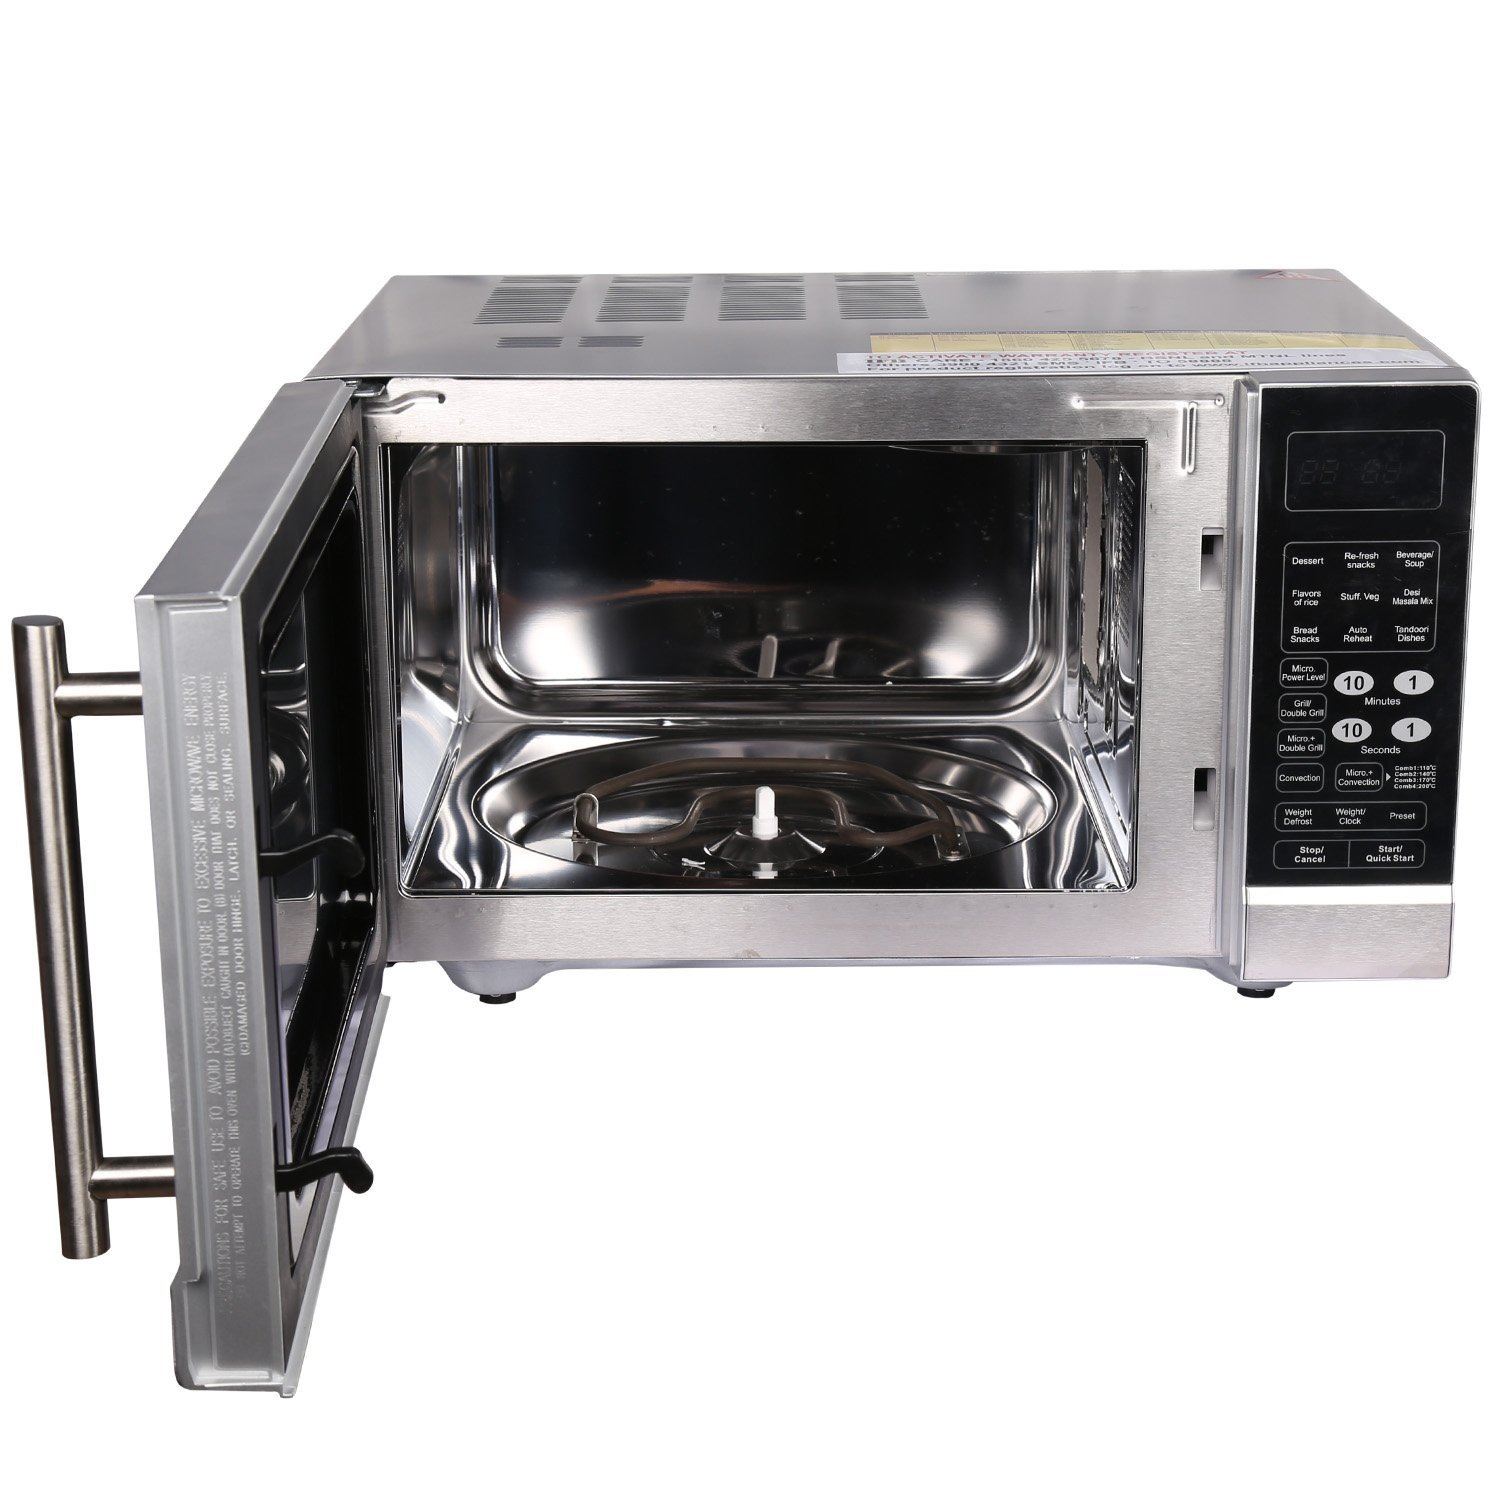 microwave oven from IFB